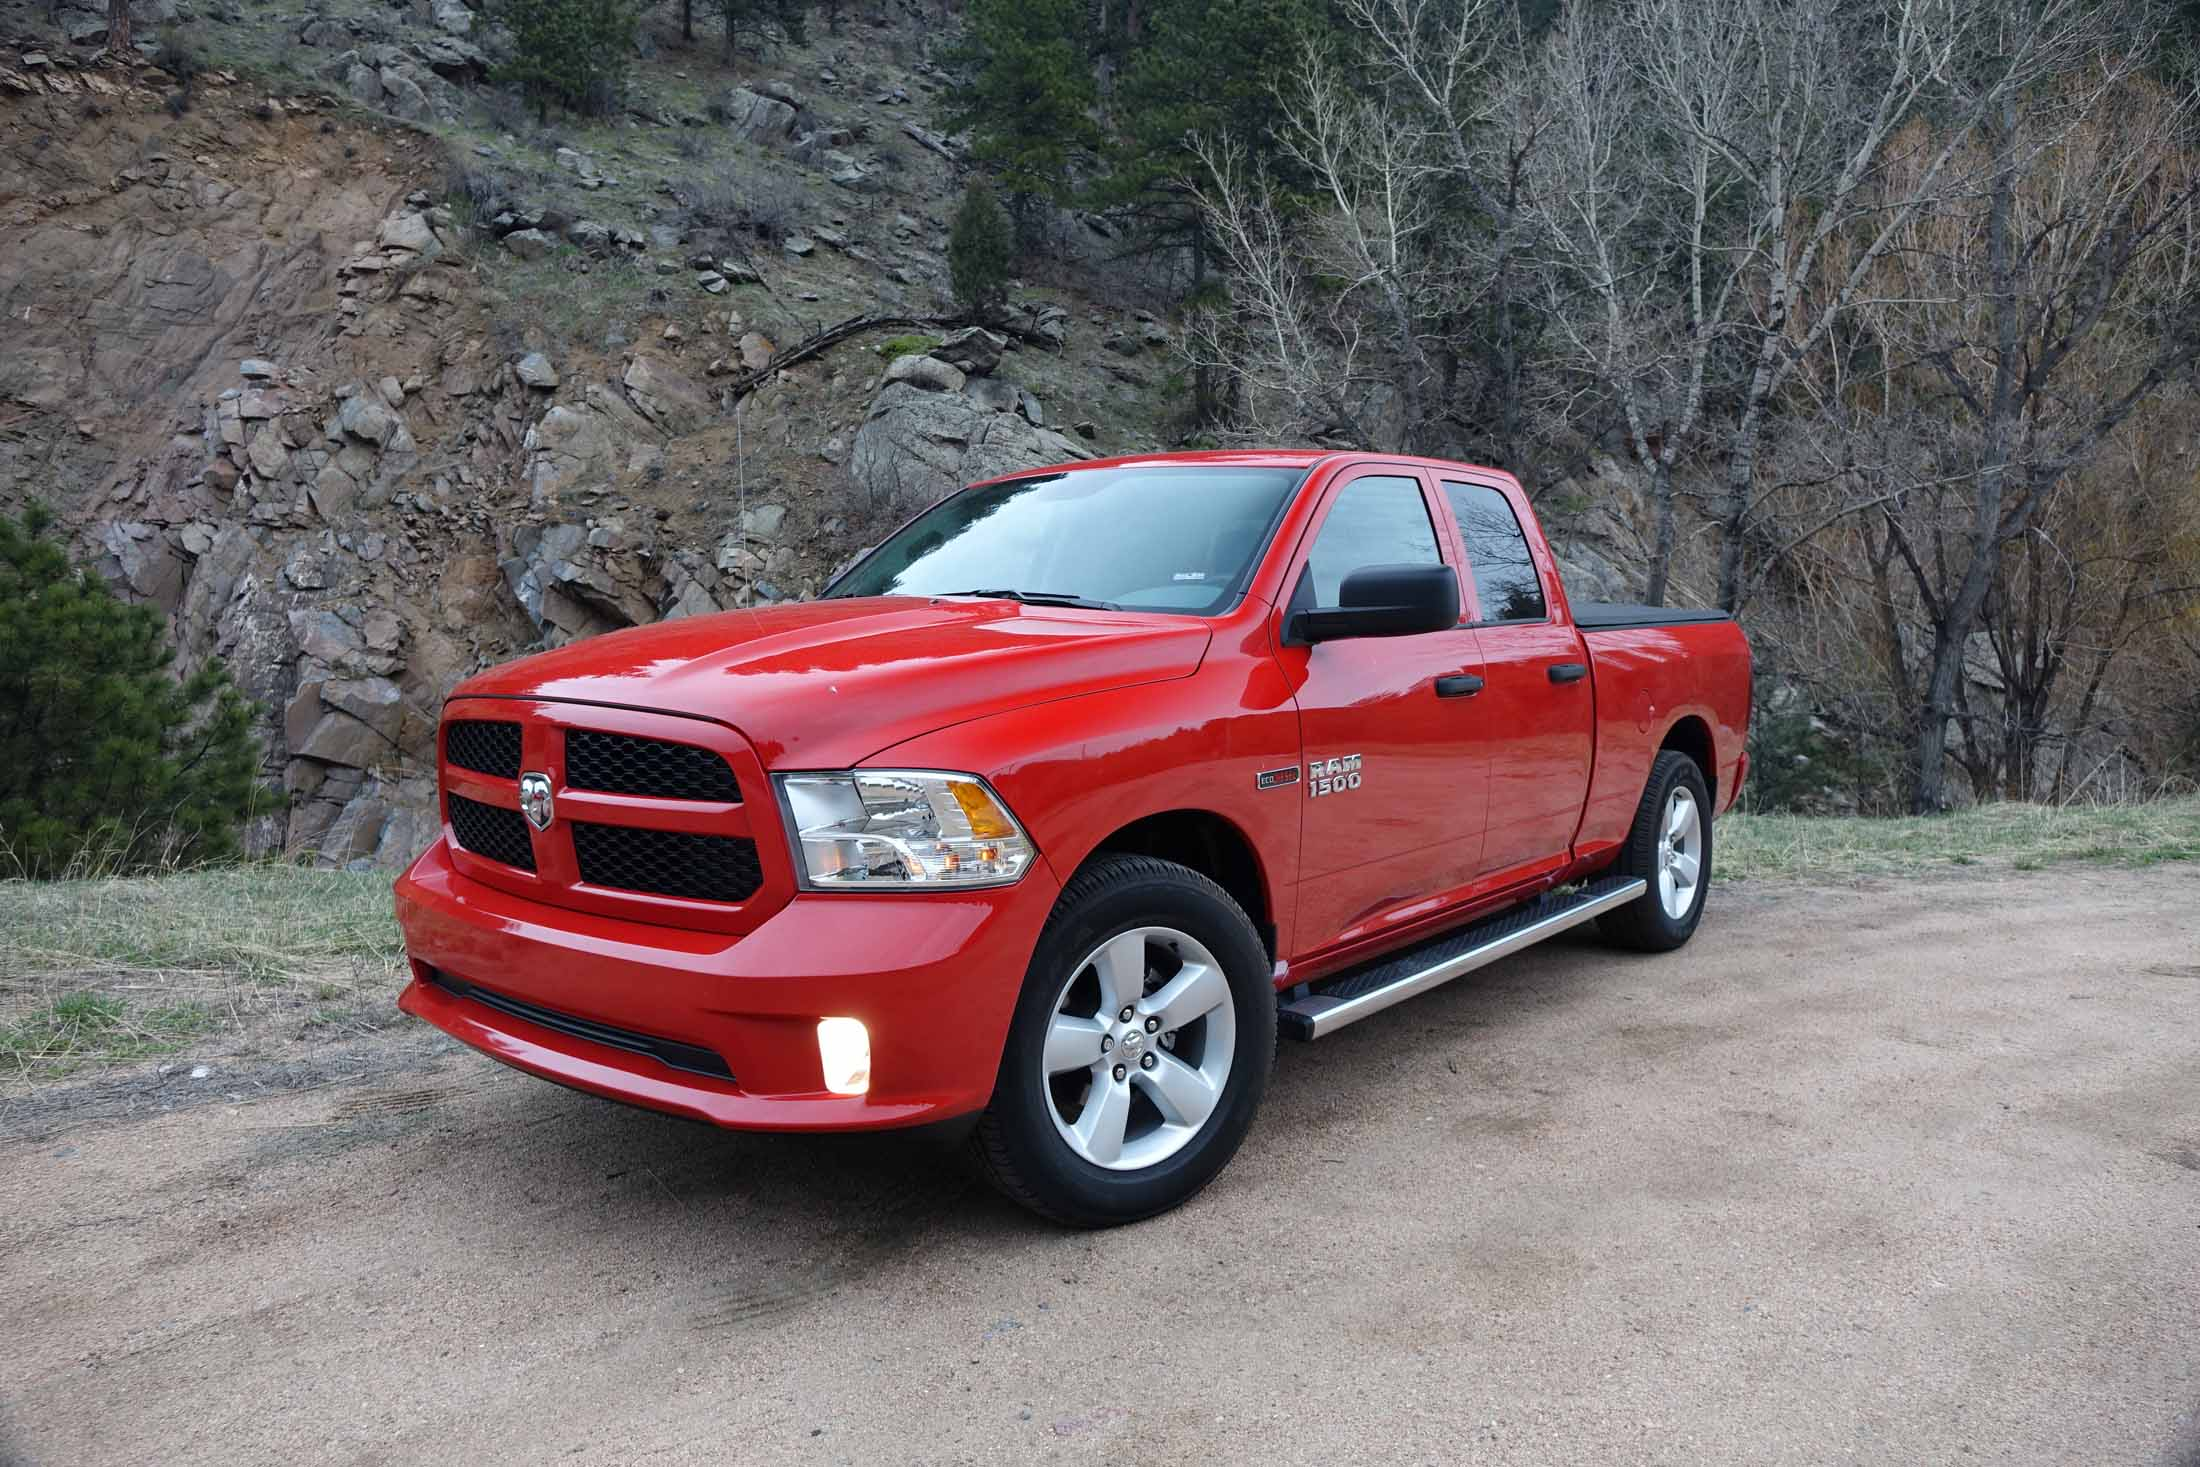 2016 ram 1500 hfe ecodiesel fuel economy review 24 mpg. Black Bedroom Furniture Sets. Home Design Ideas